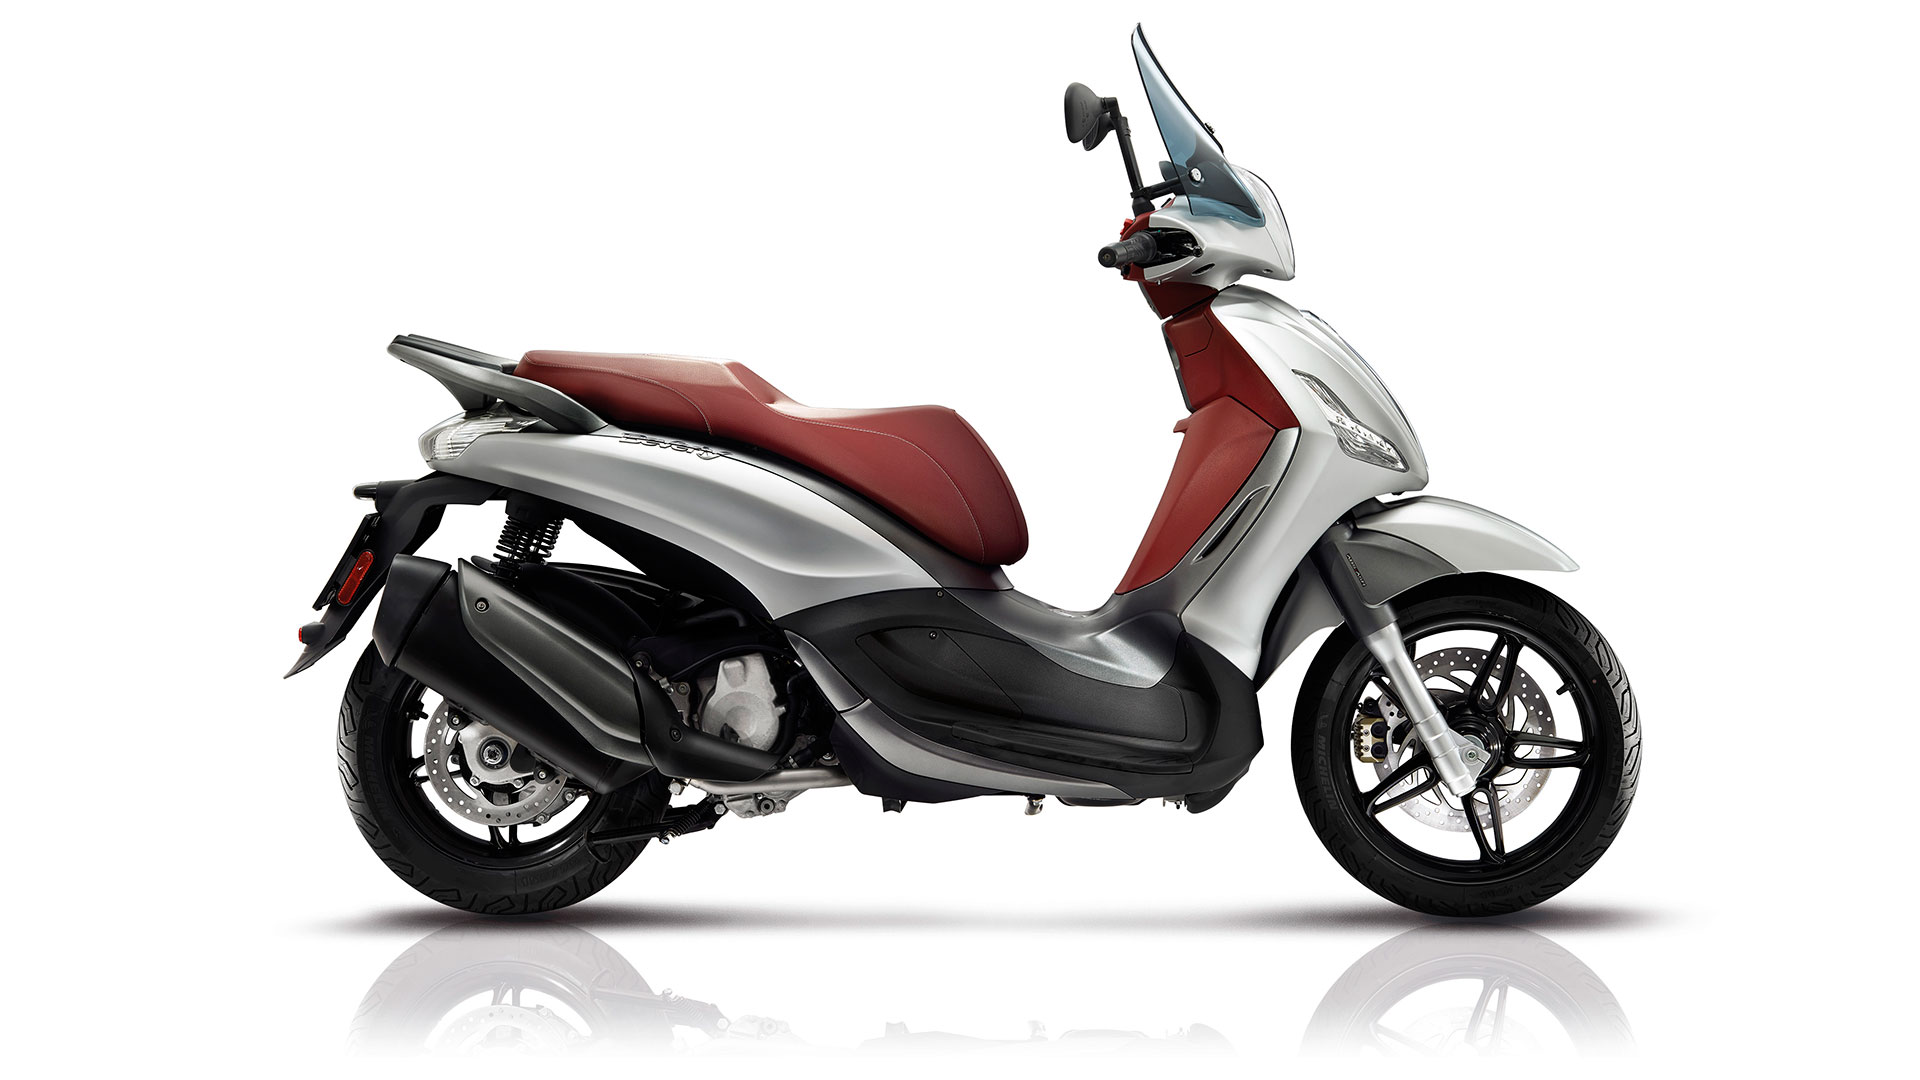 Achat Piaggio Beverly Sport touring ABS-ASR 350 cm3 neuf à Nice chez Scoot Center-2